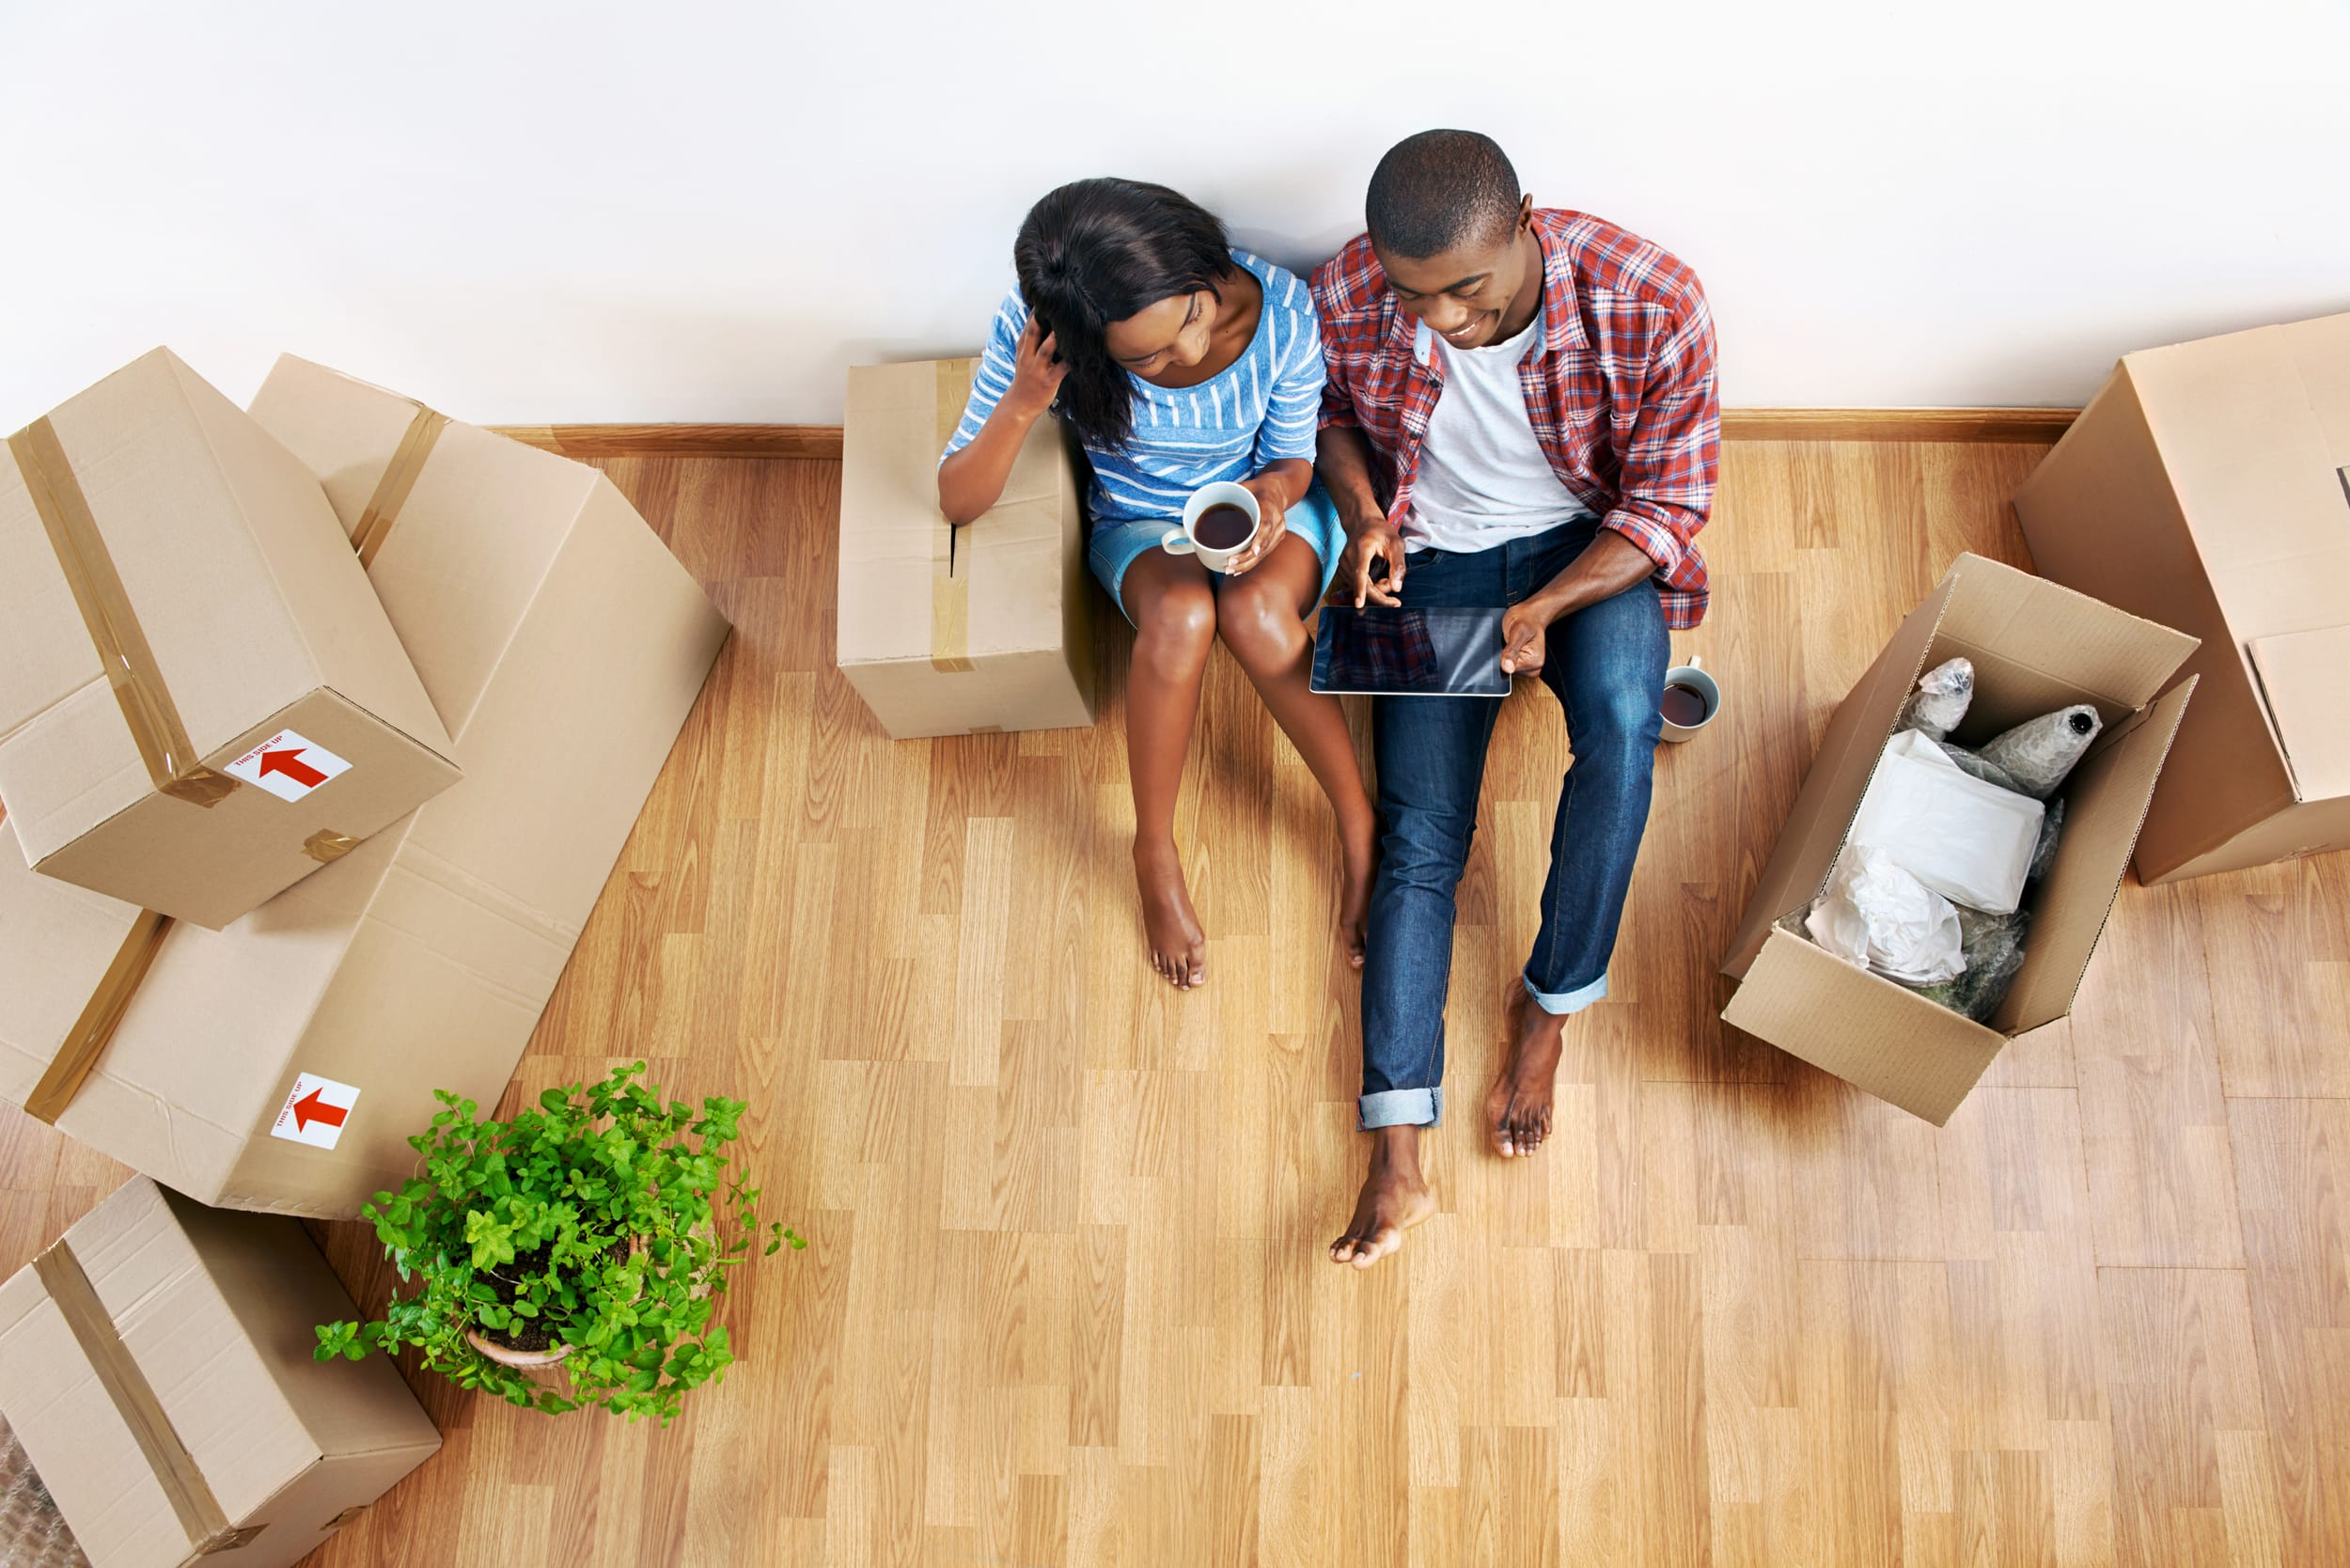 5 Things to Consider Before Moving In With a Significant Other